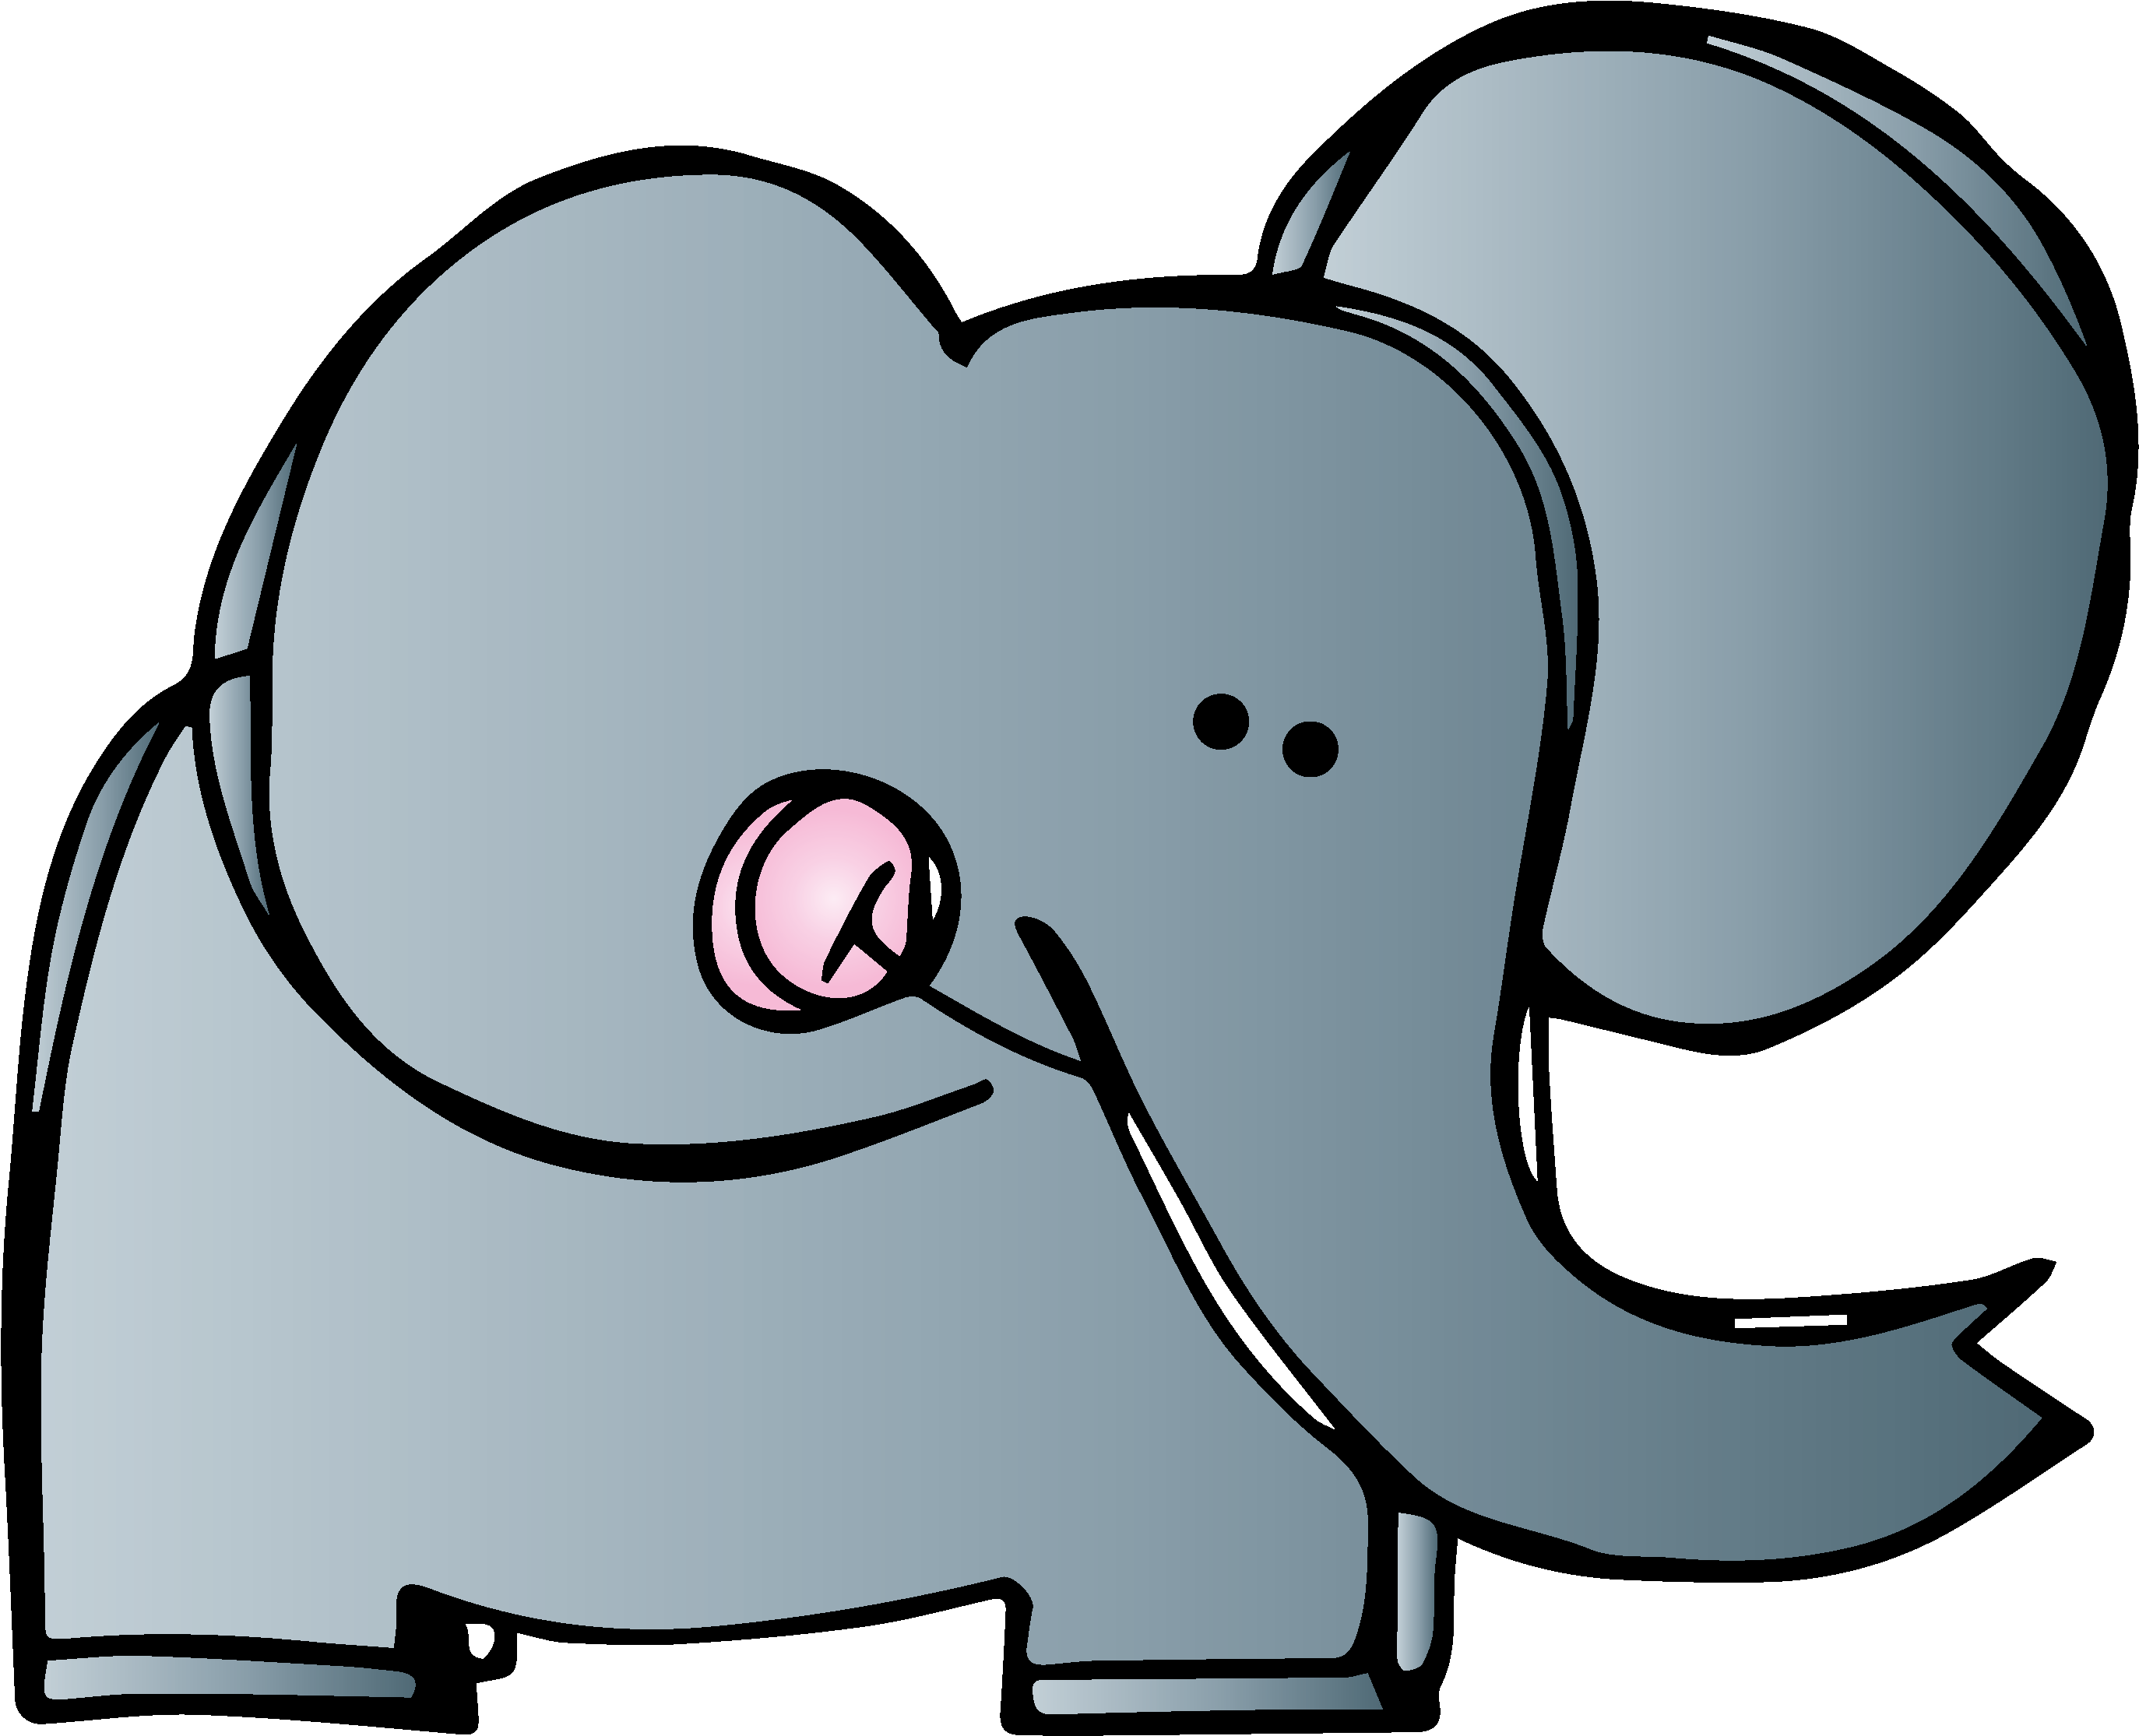 Top Images 2018 Elephant Clipart Images Black And White - Graphics From The Pond Clipart (1600x1330)